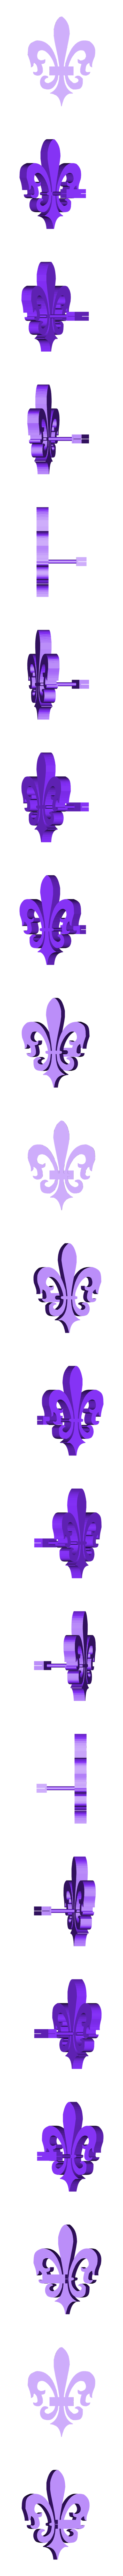 Portafotos - Flor de lis.stl Download STL file Fleur-de-Lis Photo Holder • Design to 3D print, Santiago7